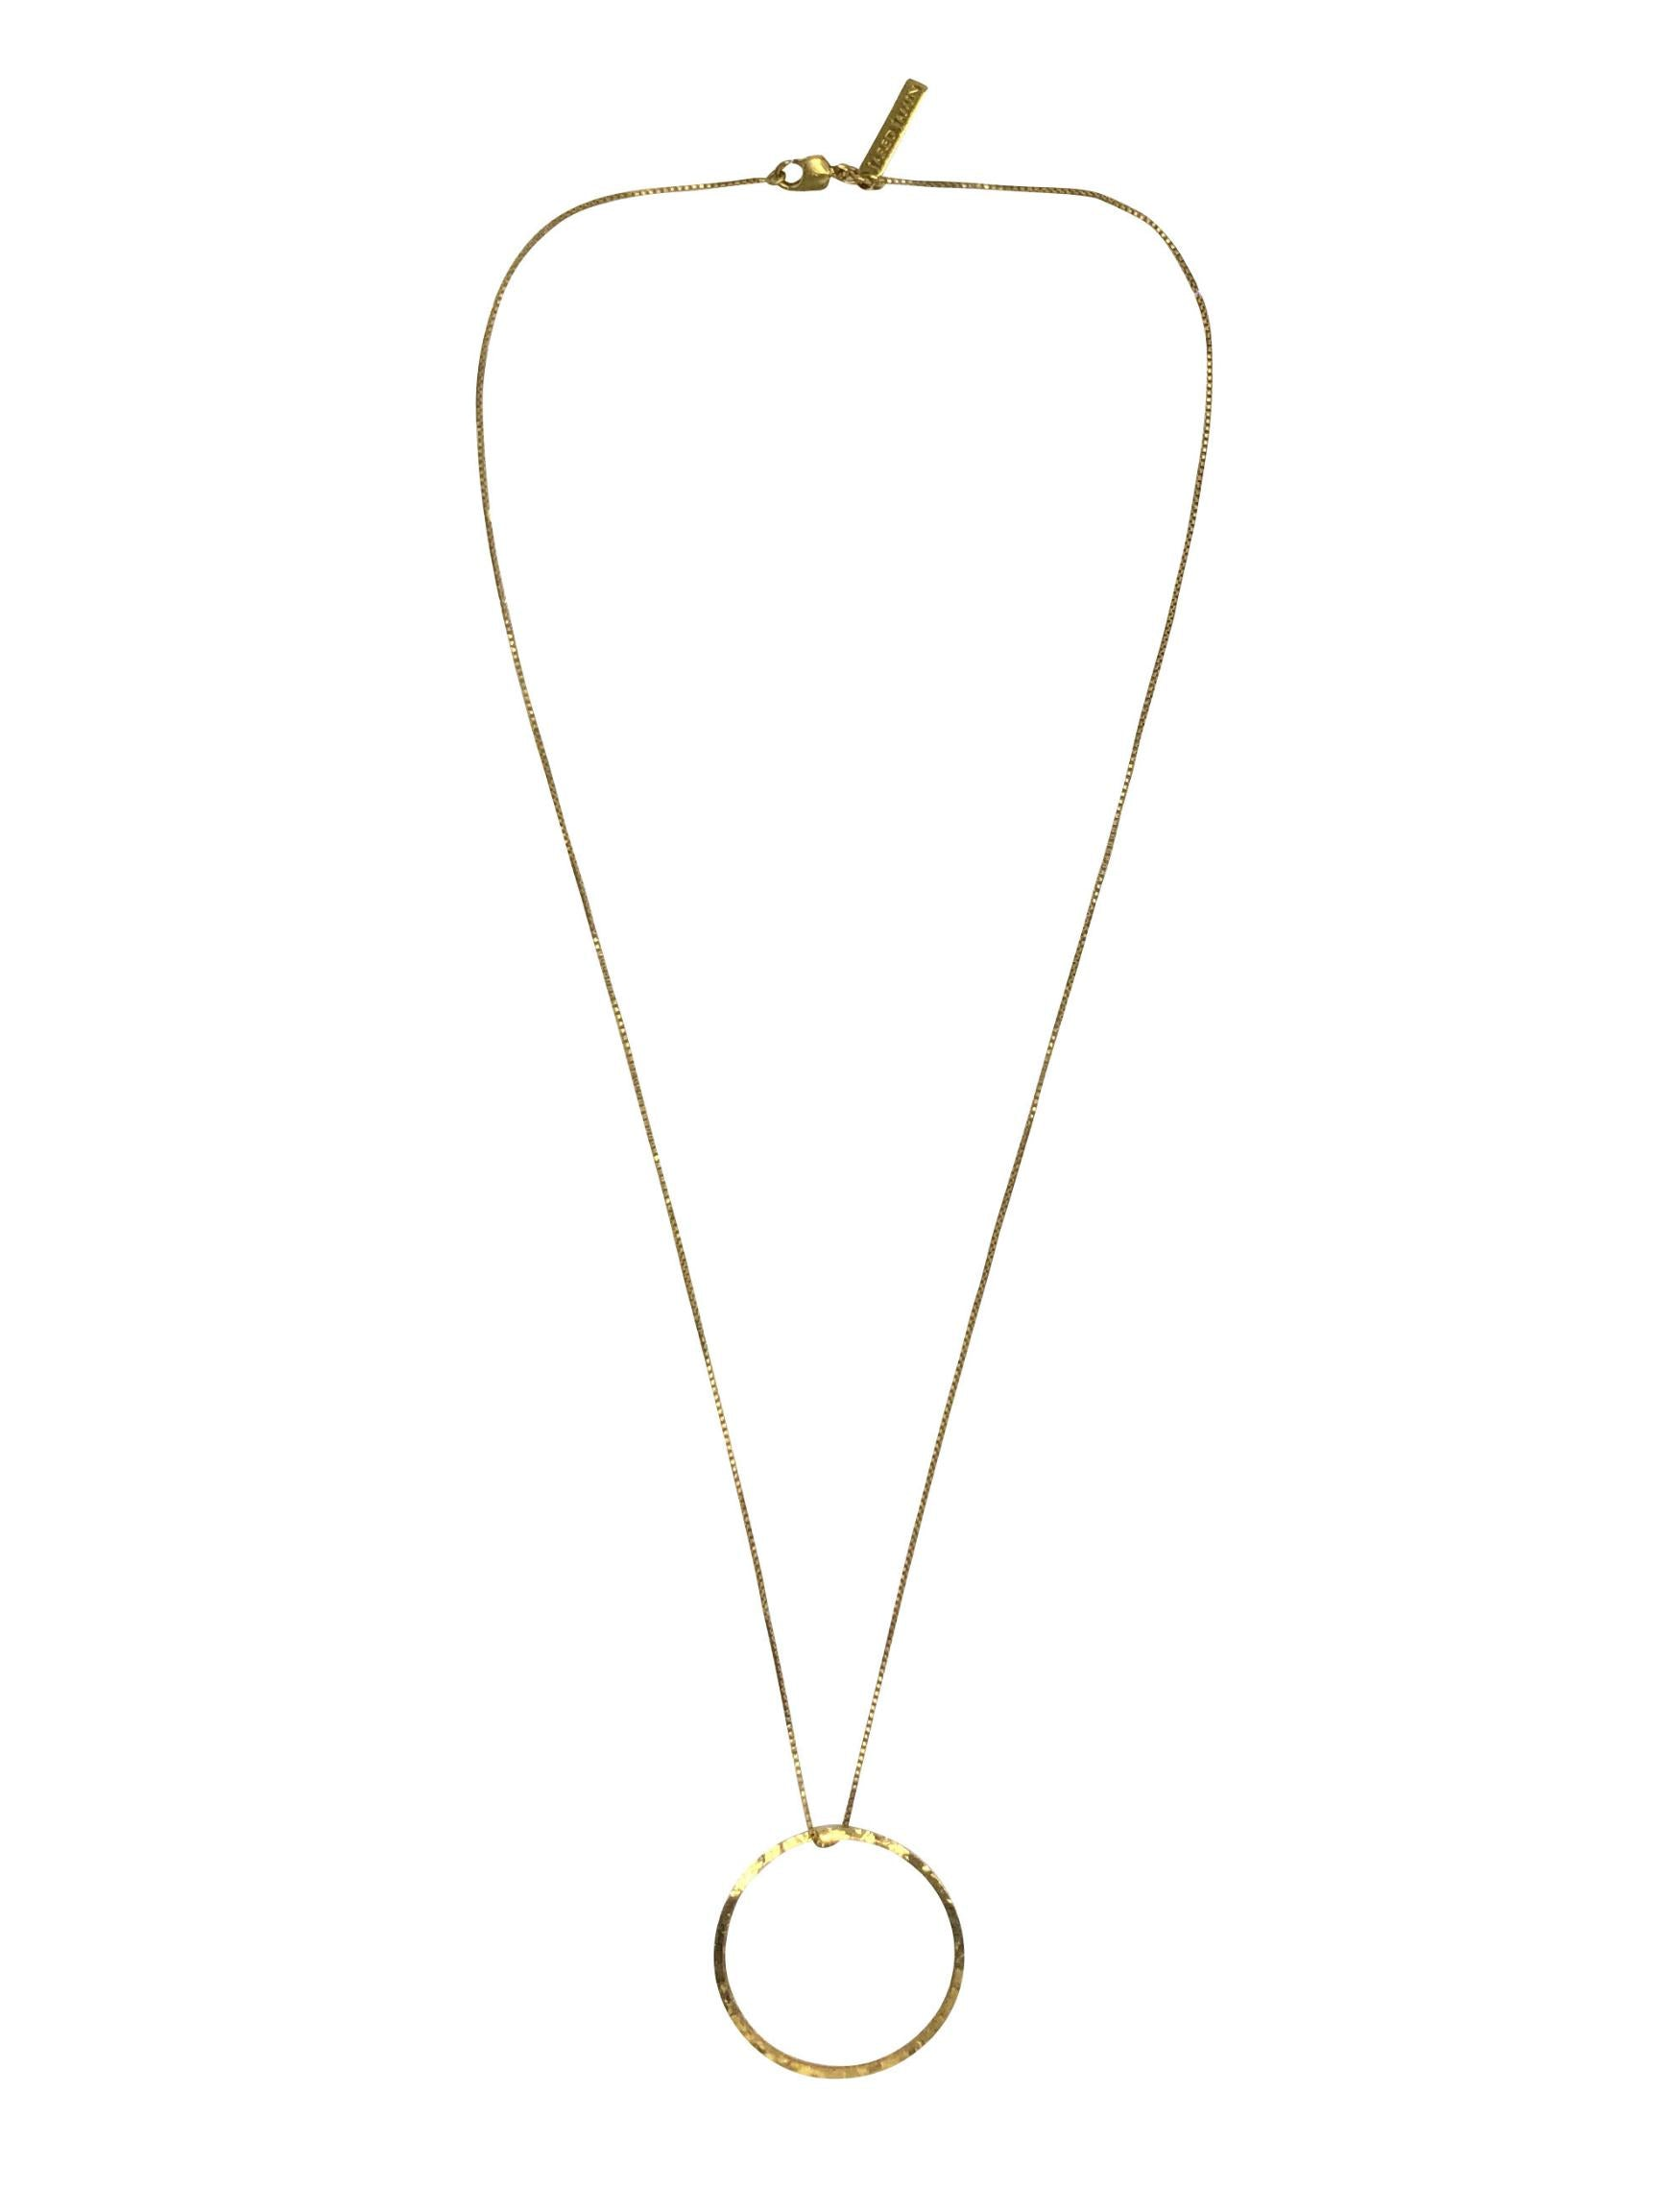 Halo Lindy Gold Circle Pendant Necklace-Necklaces-JAREDJAMIN Jewelry Online-JARED JAMIN